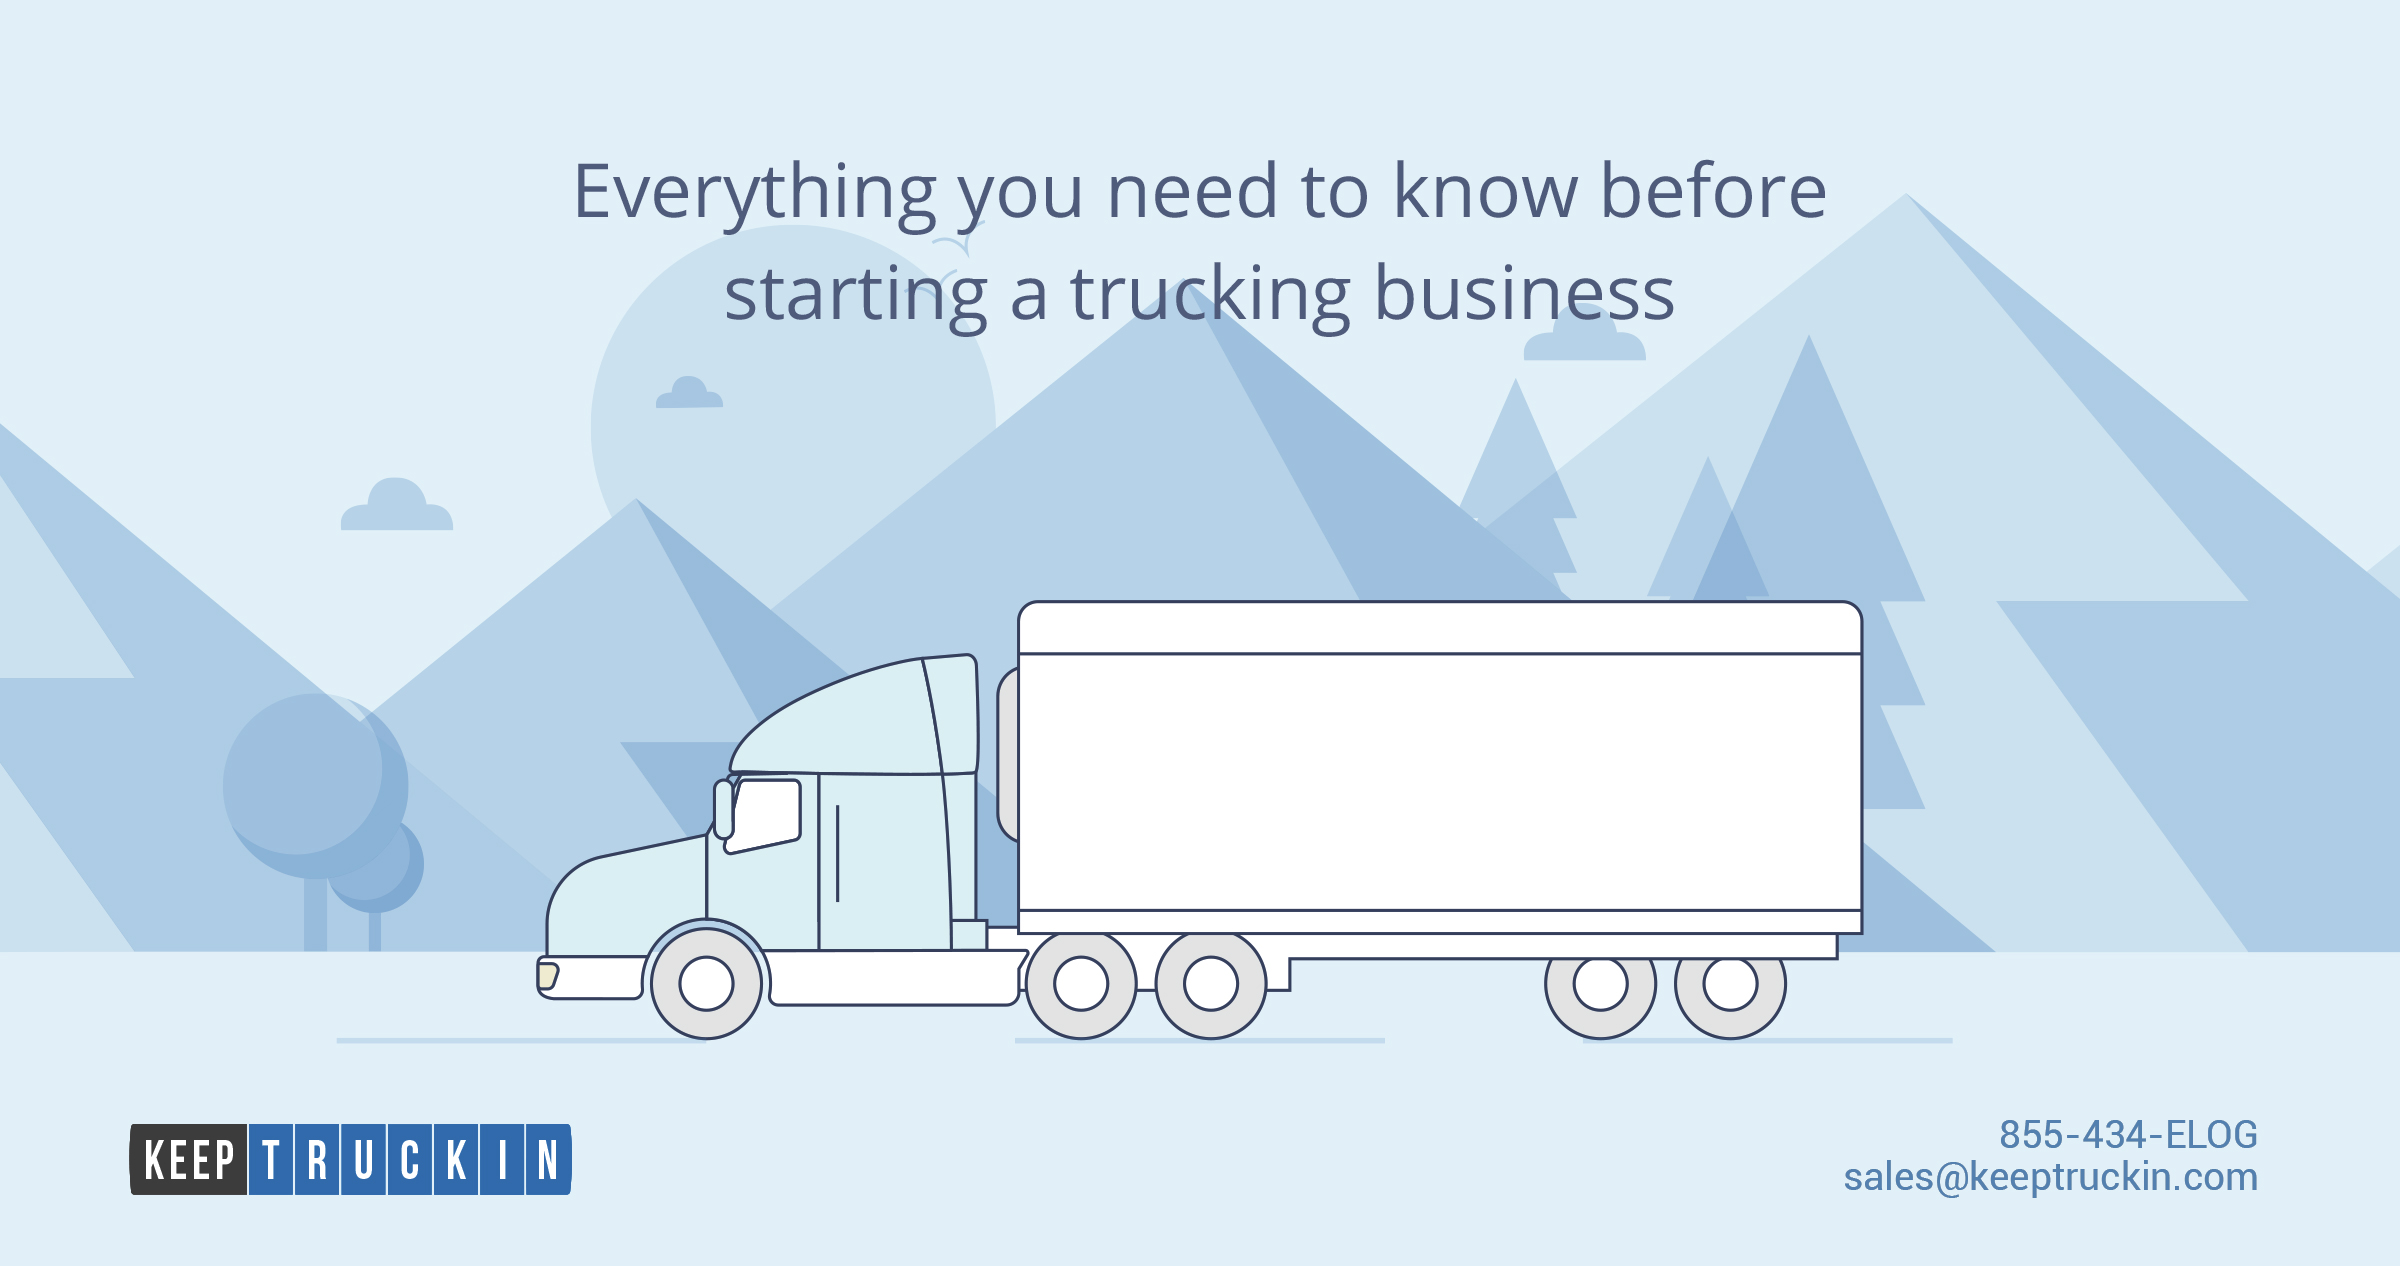 A cheat sheet for starting your trucking business